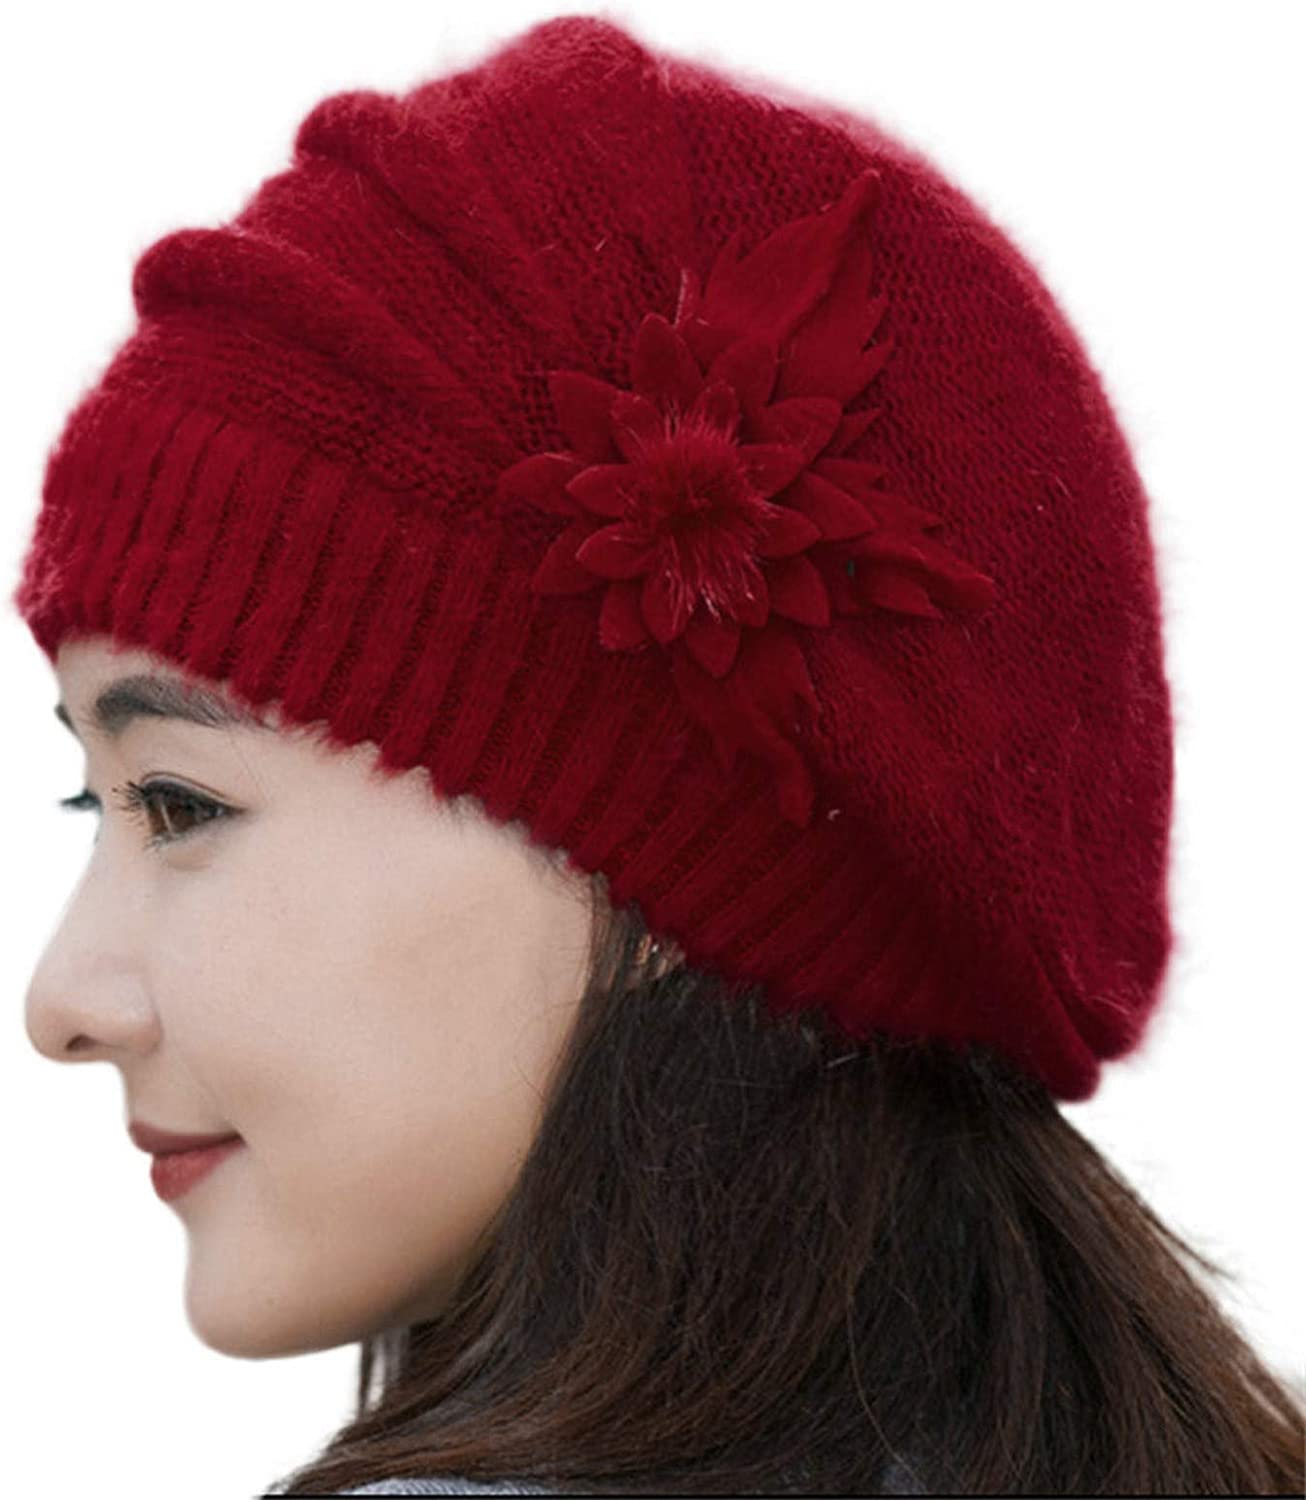 FIN86 Mens and Opening large release sale Womens Hats Knit C caps Courier shipping free shipping Fashion Flower